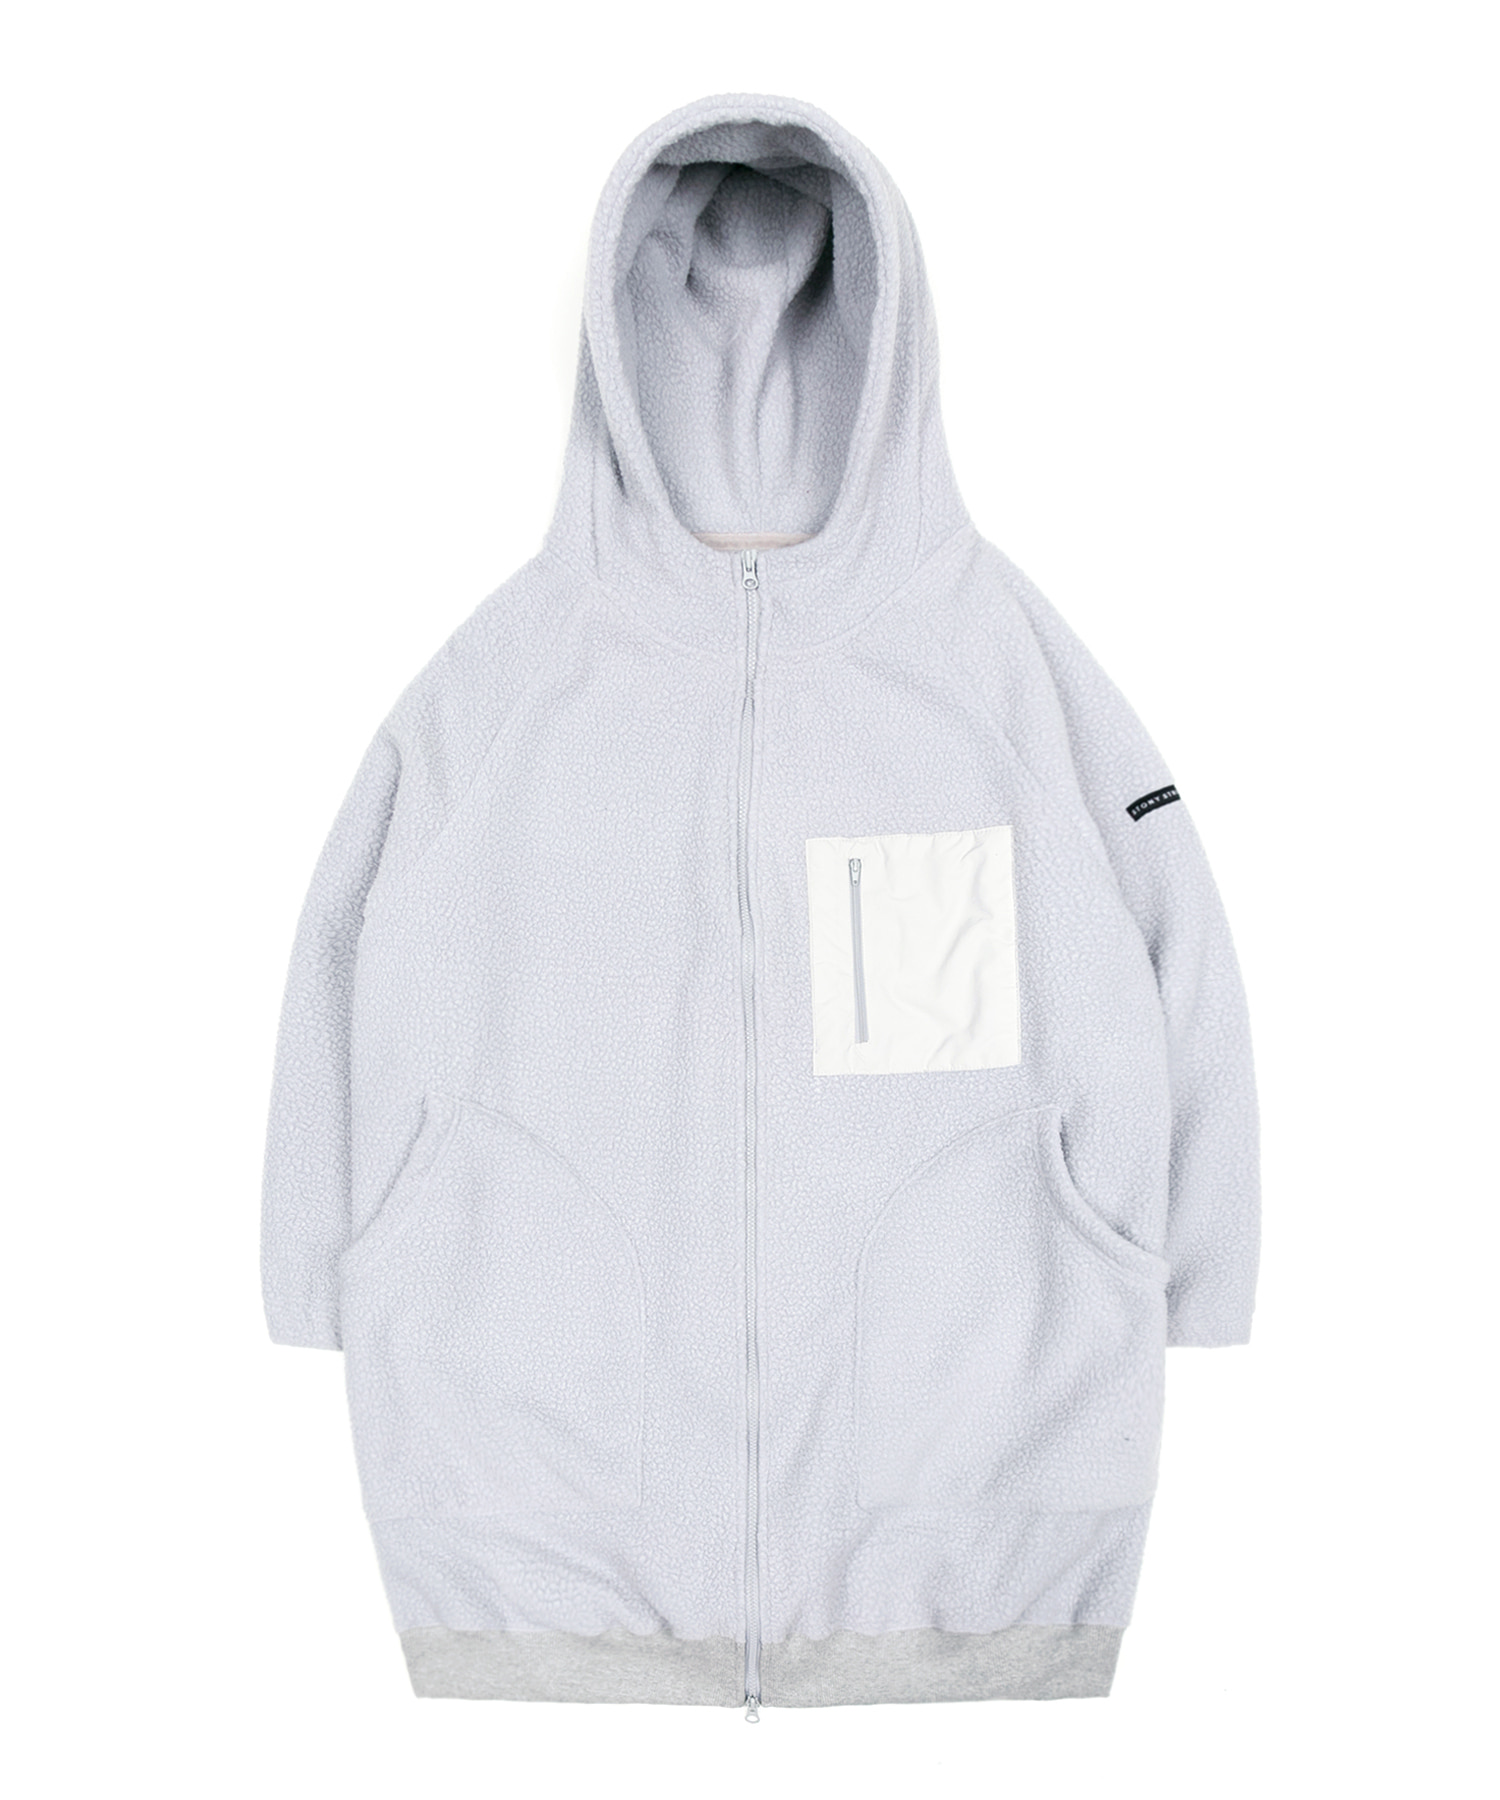 BOA FLEECE LONG HOODIE JACKET - GRAY